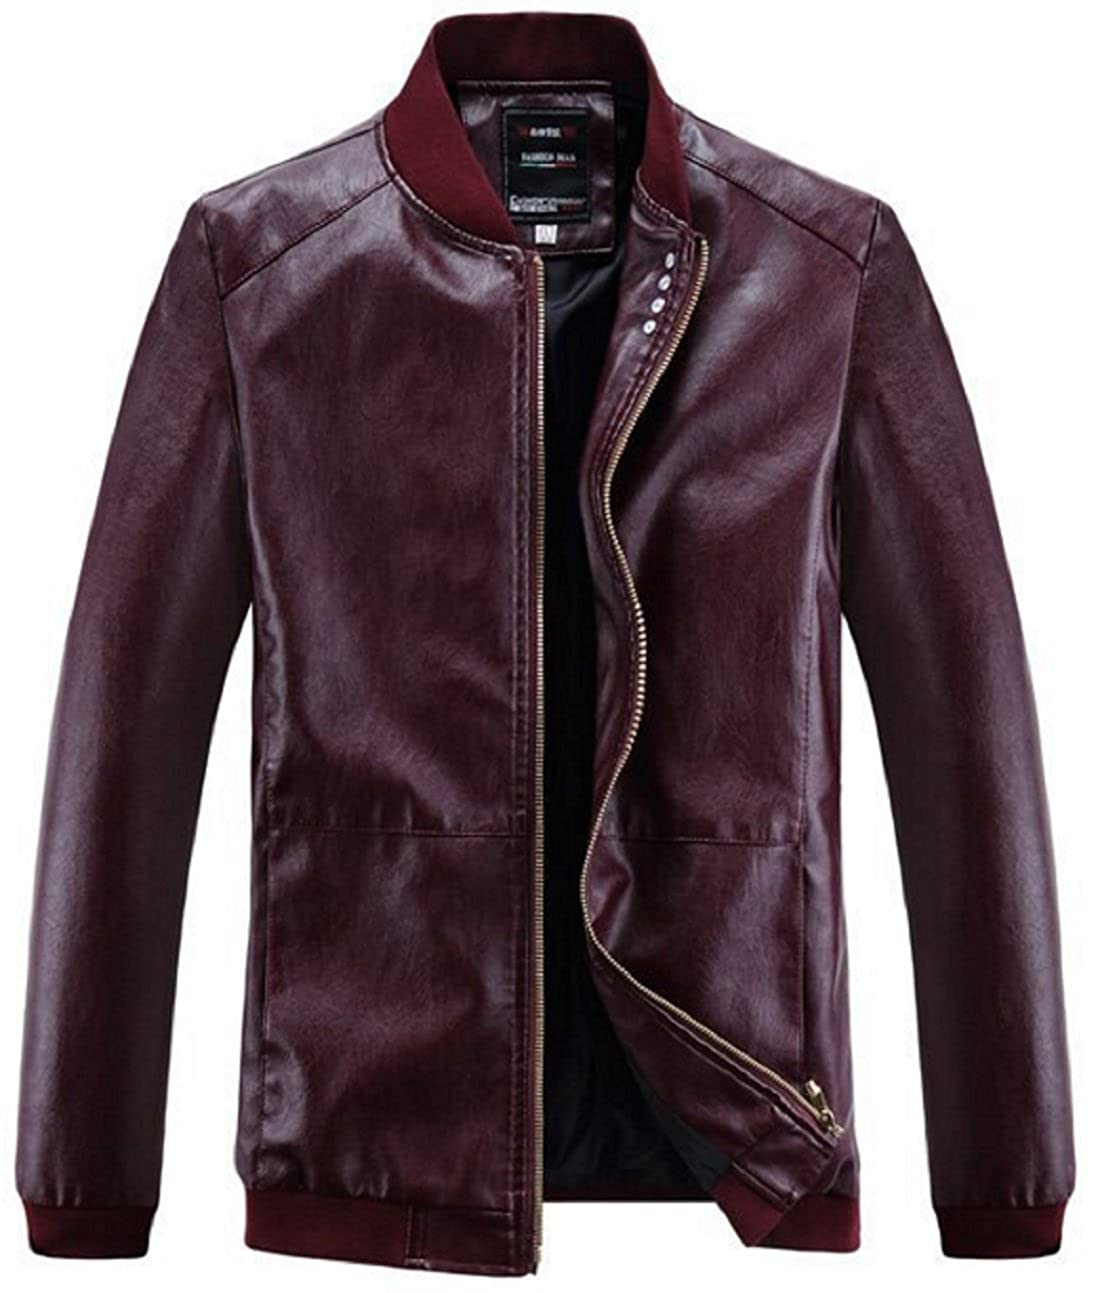 Olrek Men's Fashion Leather Jacket trp859